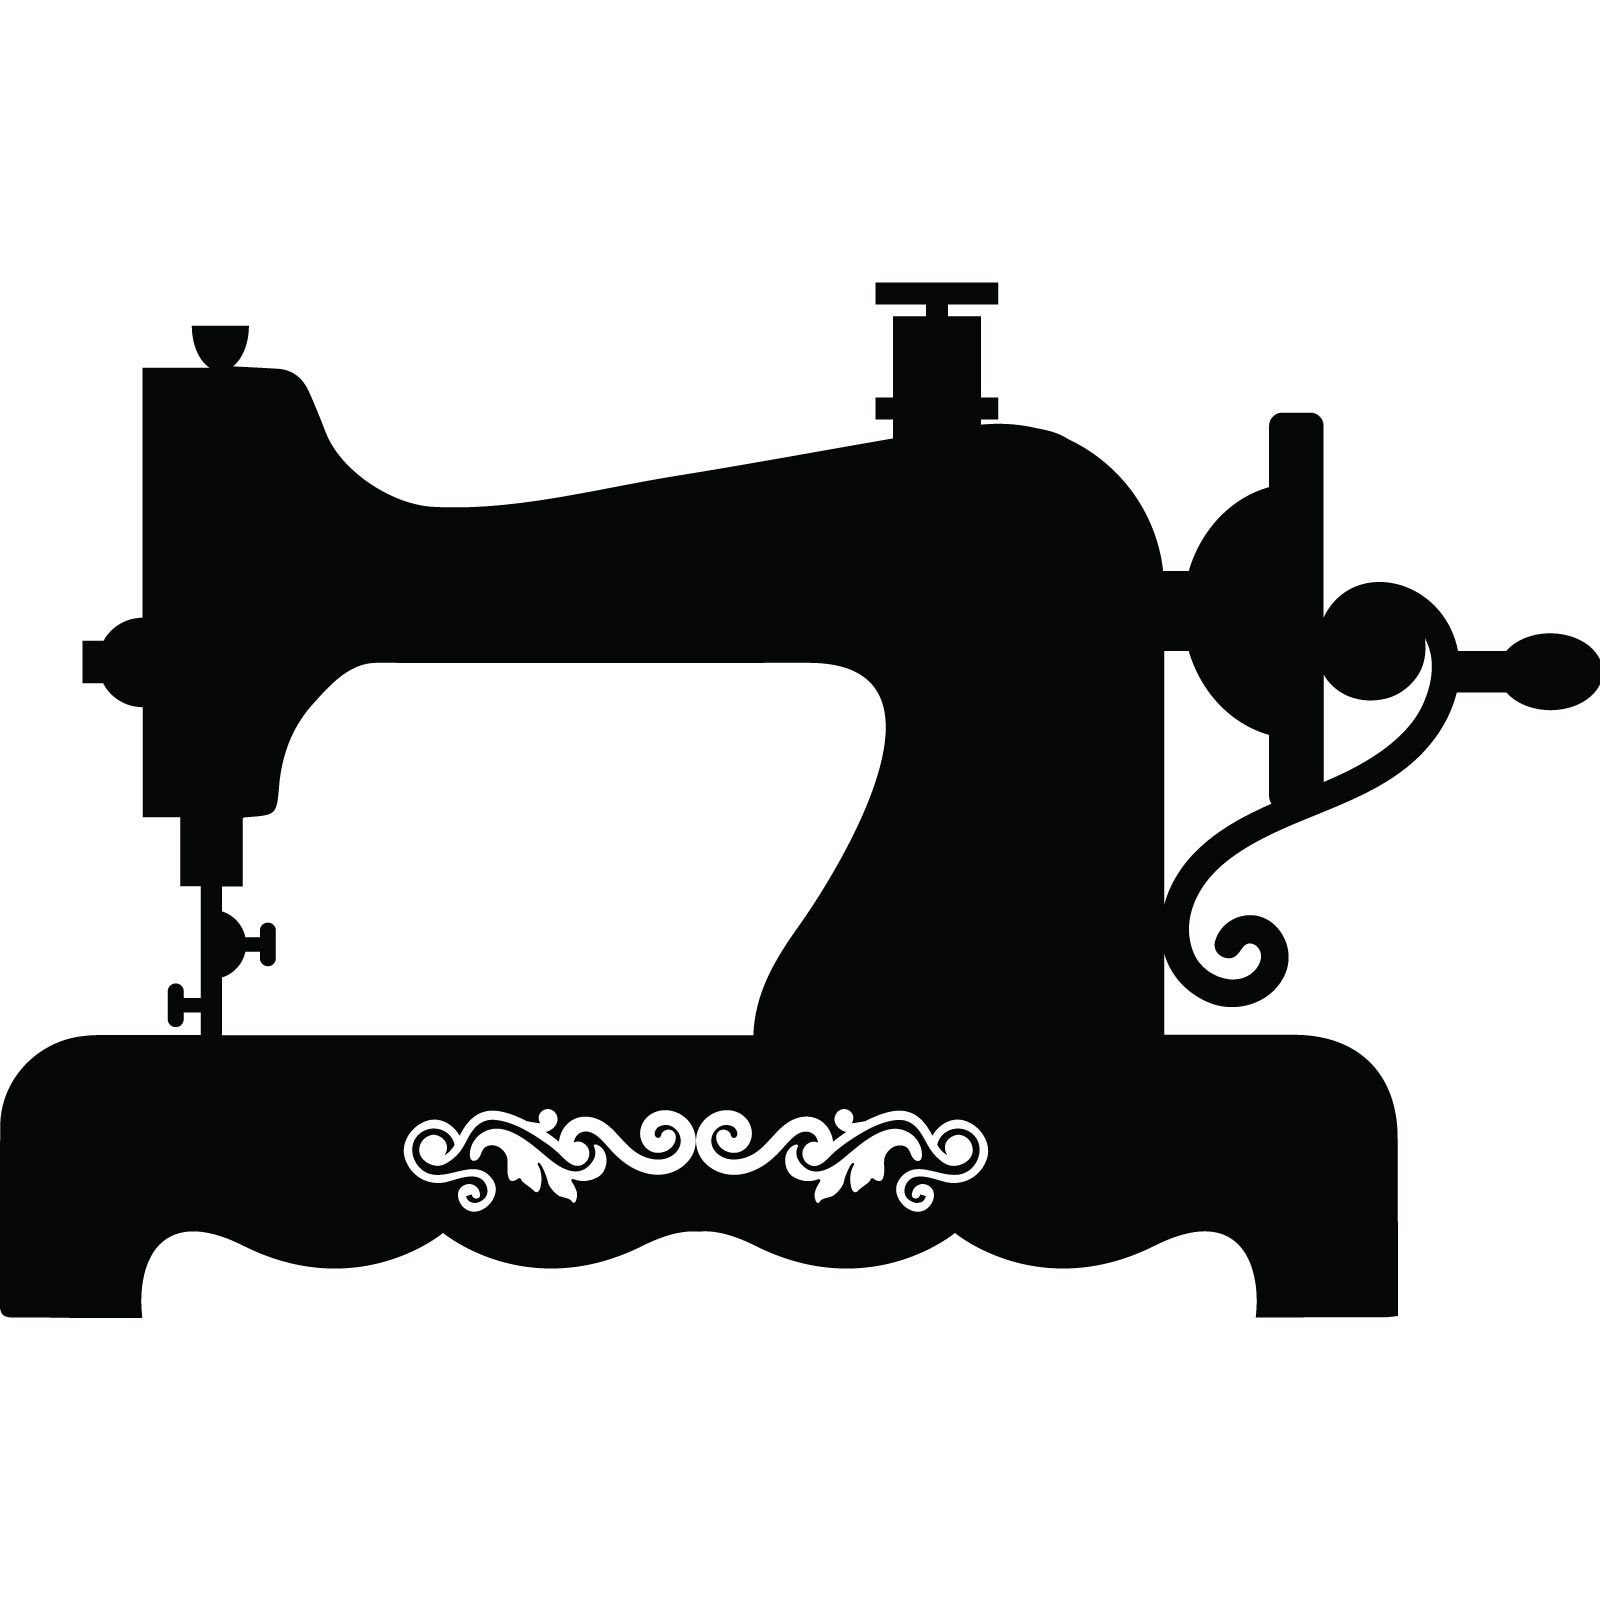 Image Result For Vintage Sewing Machine Silhouette